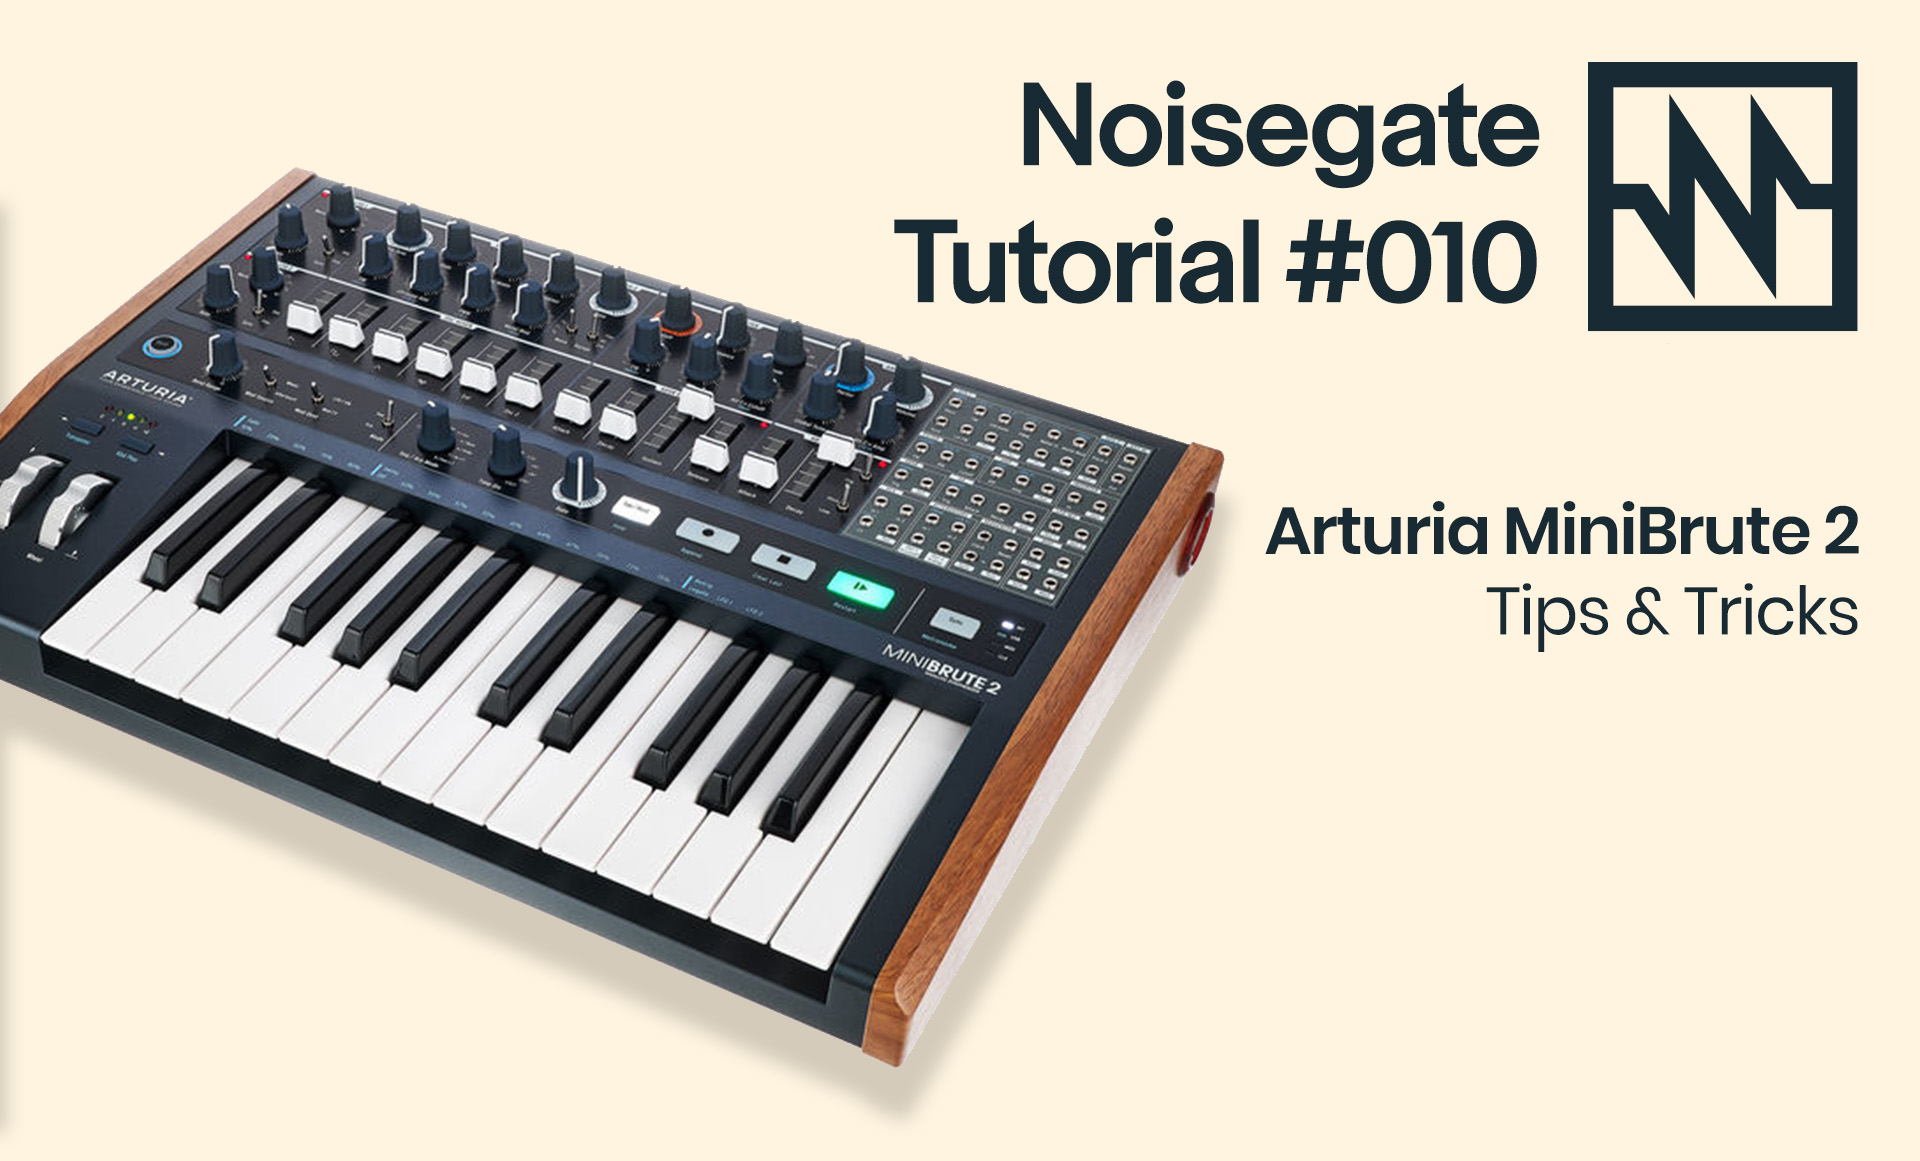 Noisegate Video Tutorial Series #010: Arturia Minibrute 2